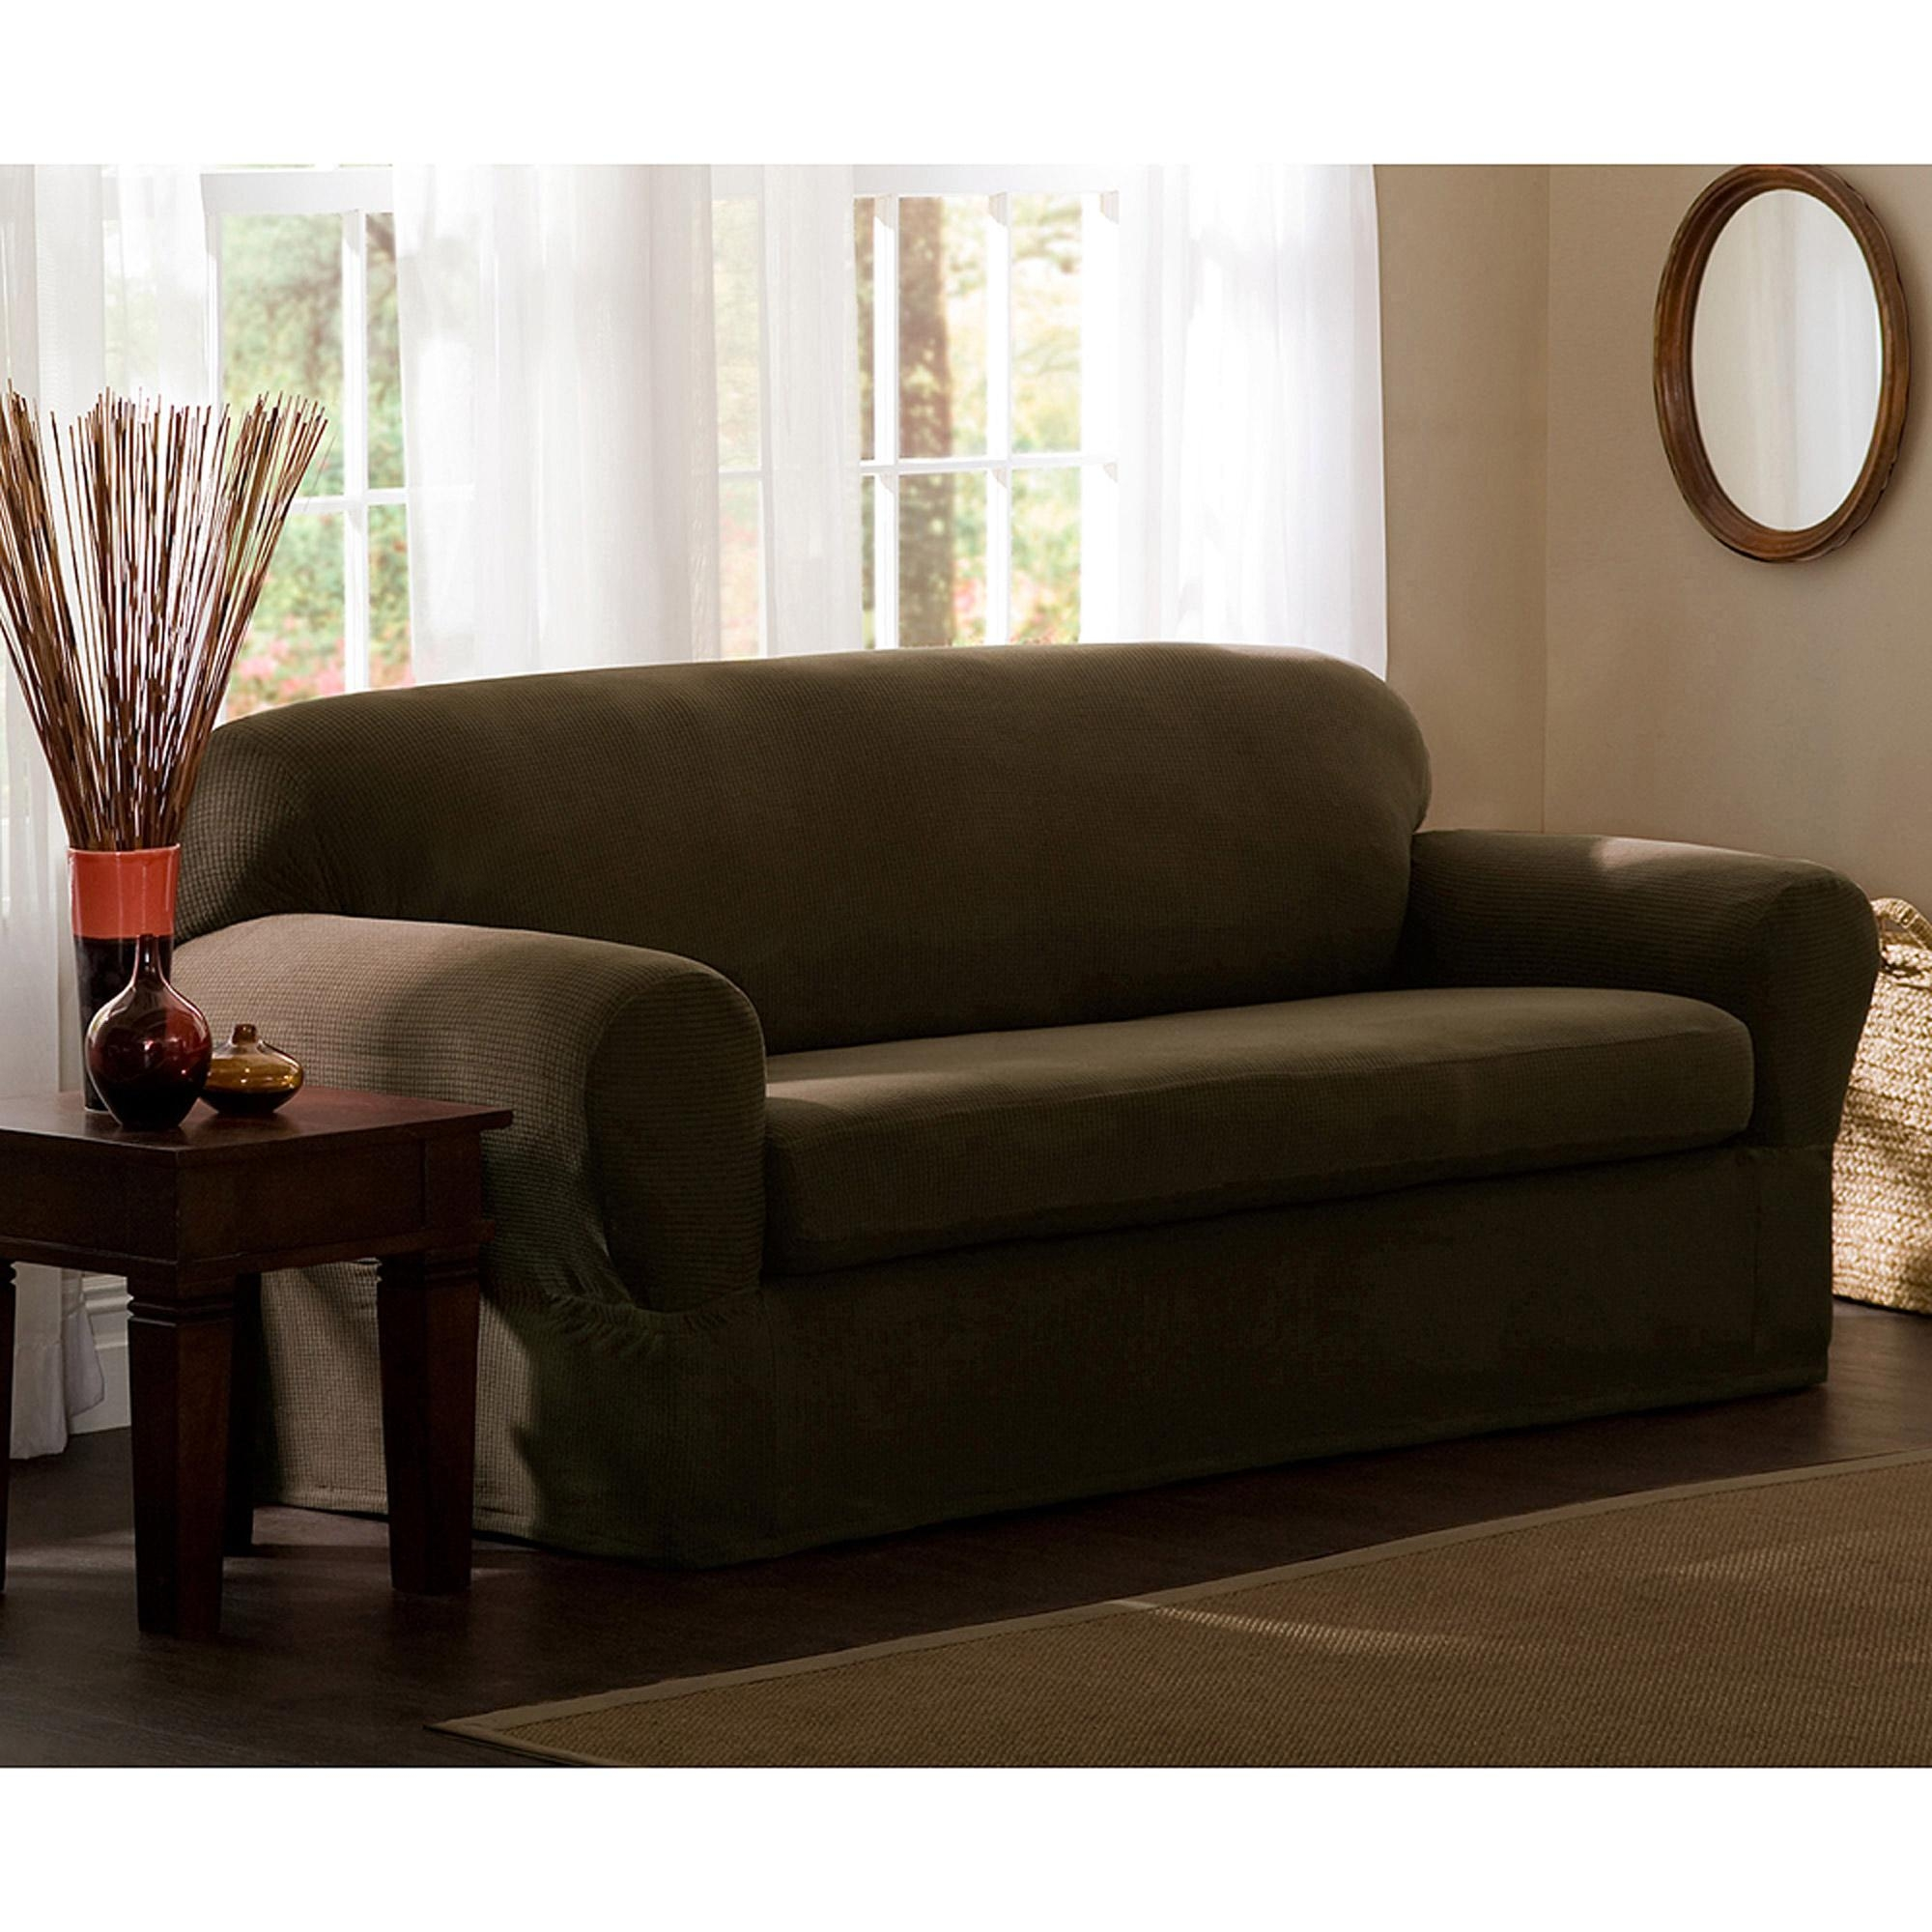 Mainstays Faux Suede Loveseat Slipcover – Walmart For Suede Slipcovers For Sofas (Image 10 of 20)